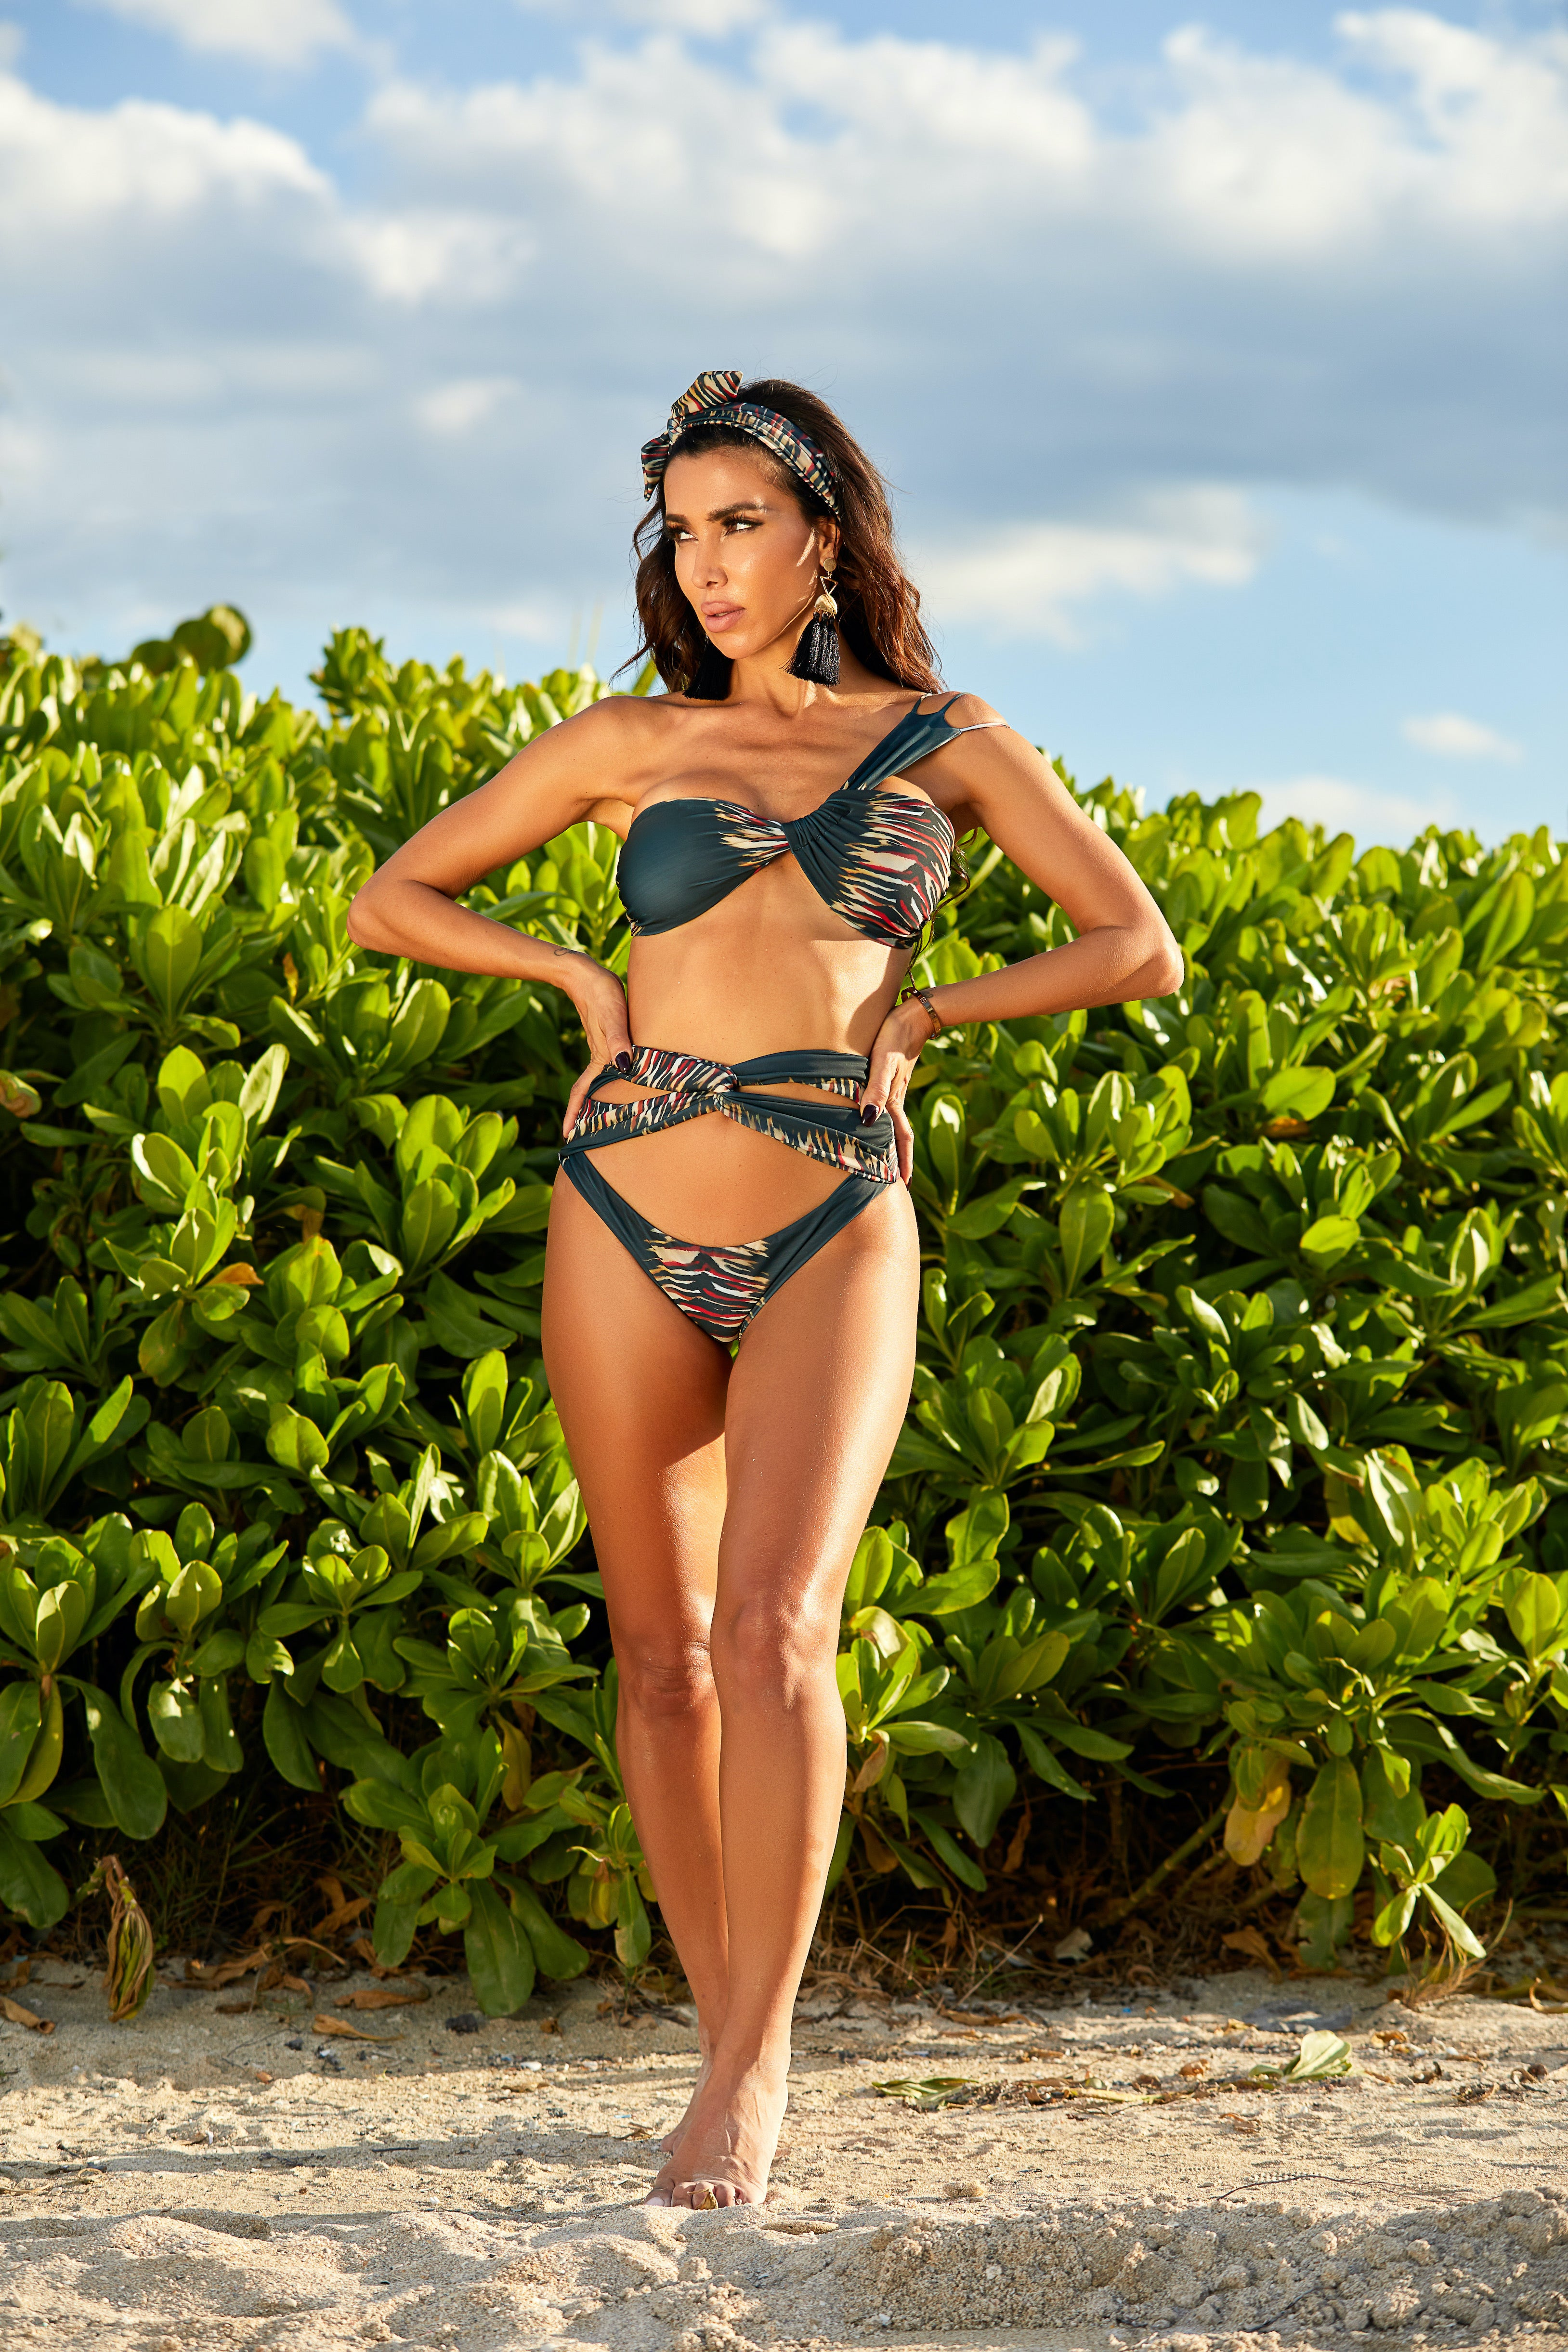 The Sumptuous Asymmetrical Tiger Print Bikini